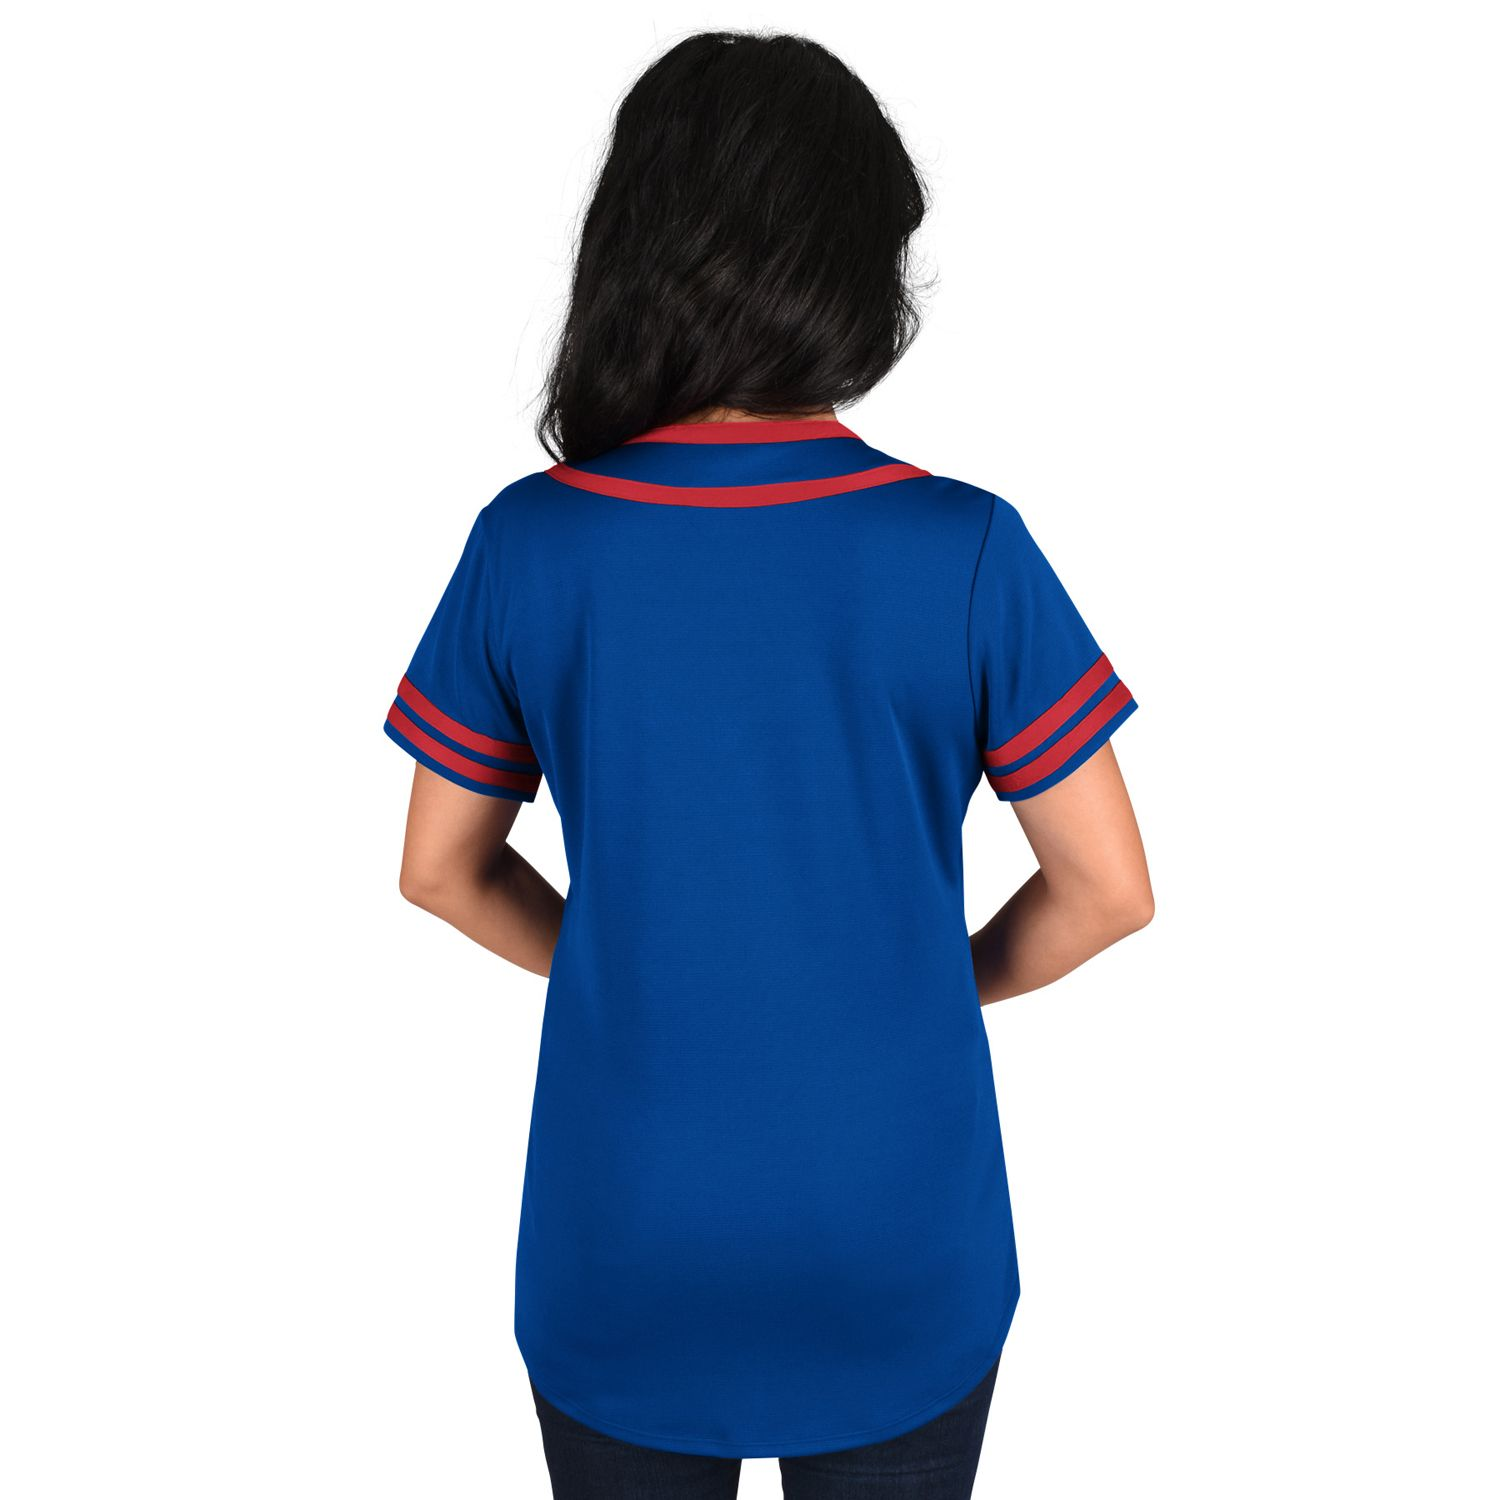 MLB Chicago Cubs Jerseys Sports Fan Clothing